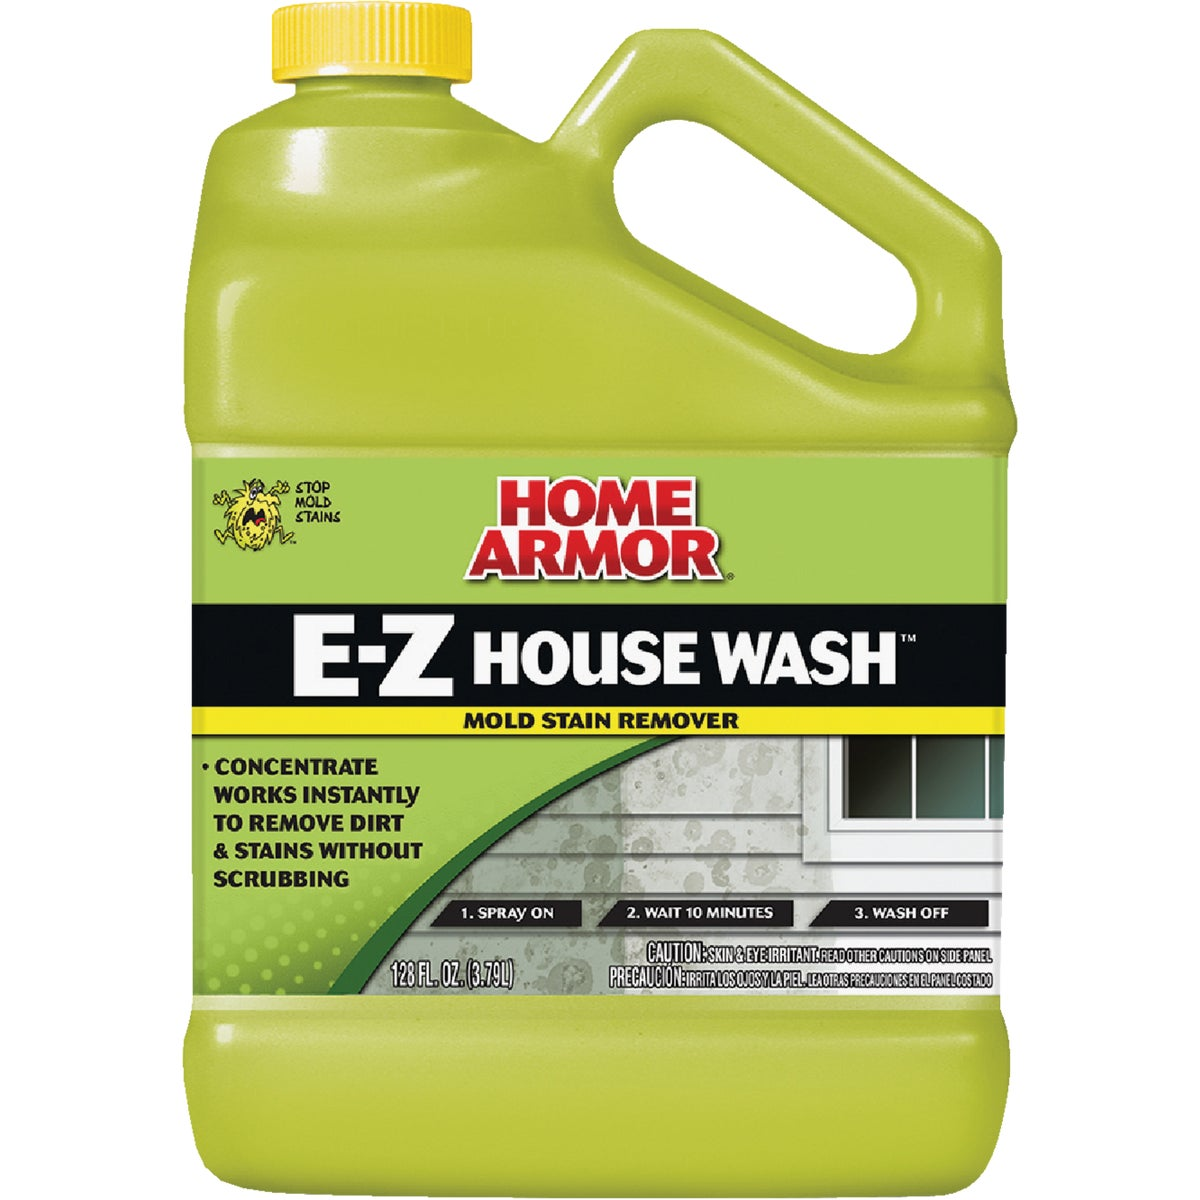 E-Z GAL HOUSE WASH - FG503 by Wm Barr Company